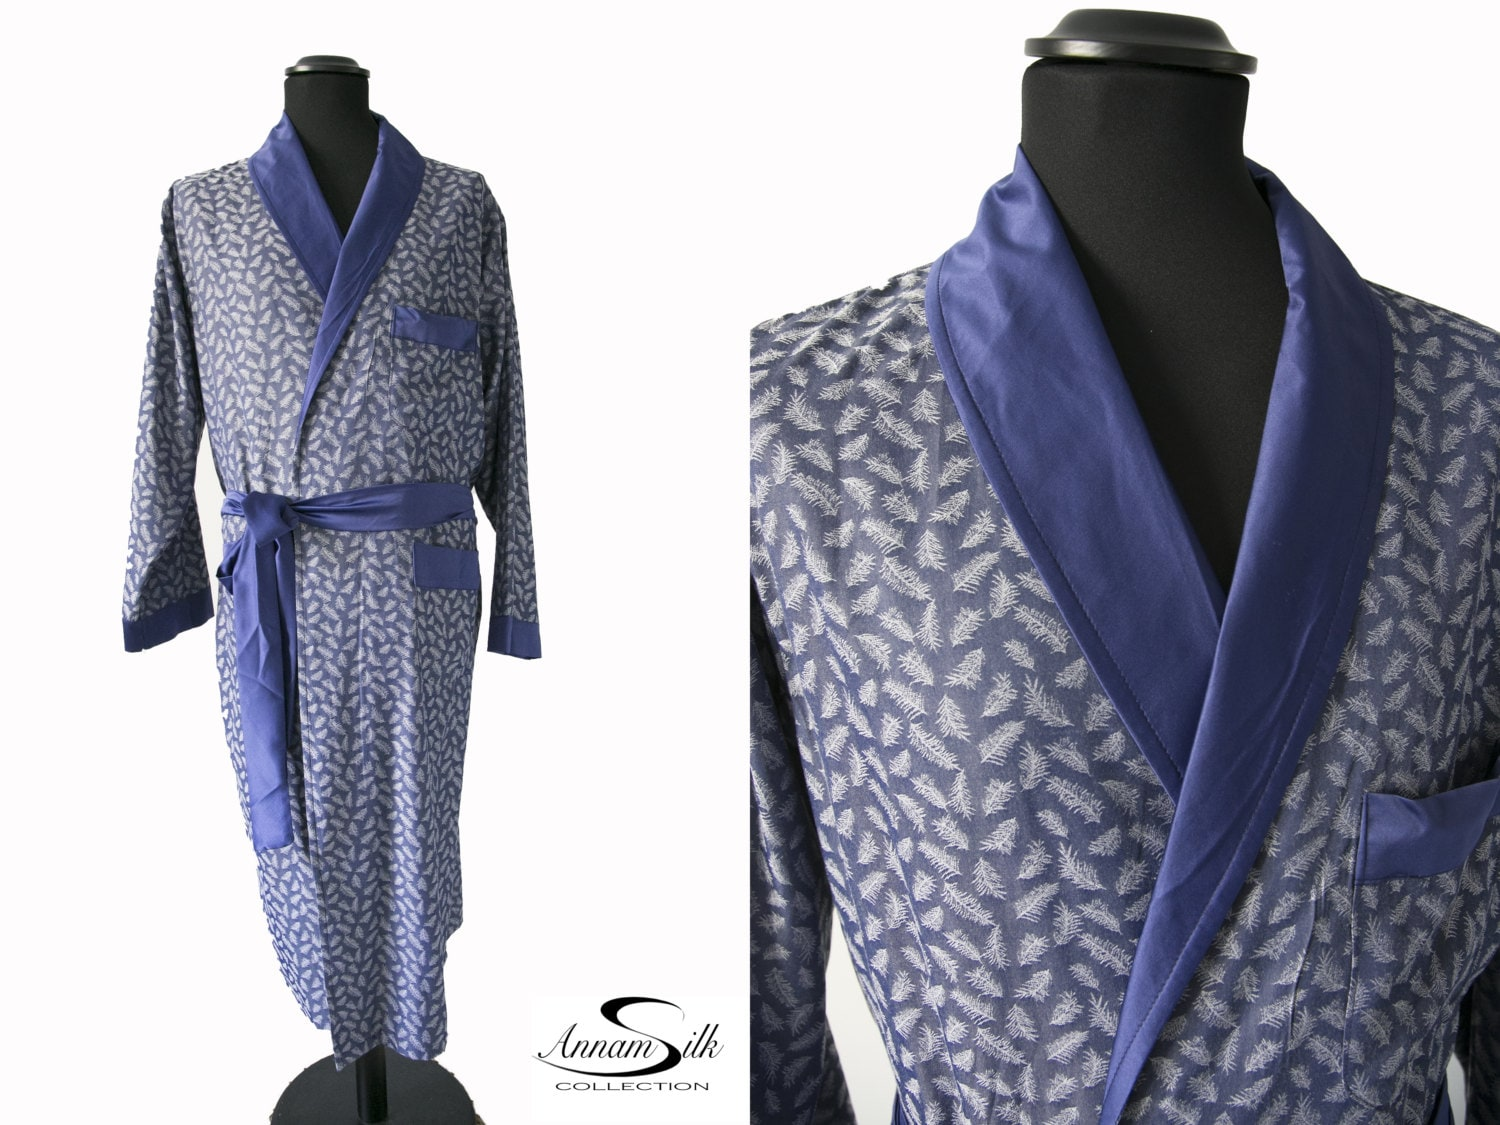 50% off SILK NATURAL Sleeping Gown, NightGown, Hospital Gown ...